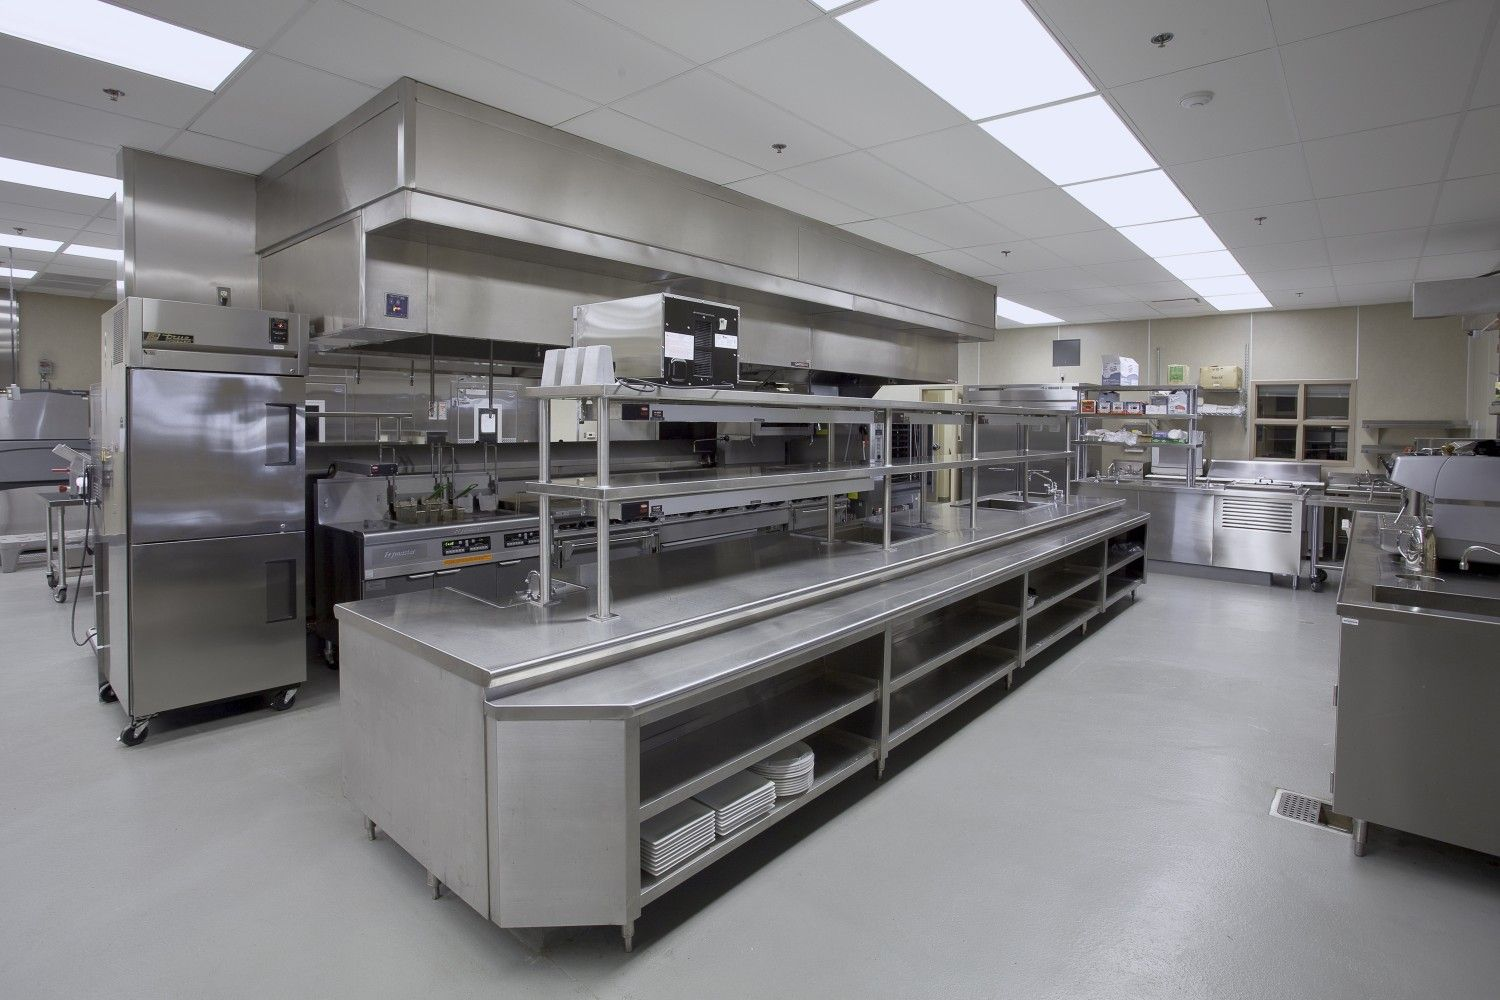 Restaurant Keuken & Deli Commercial Kitchen Design Google Search Commercial